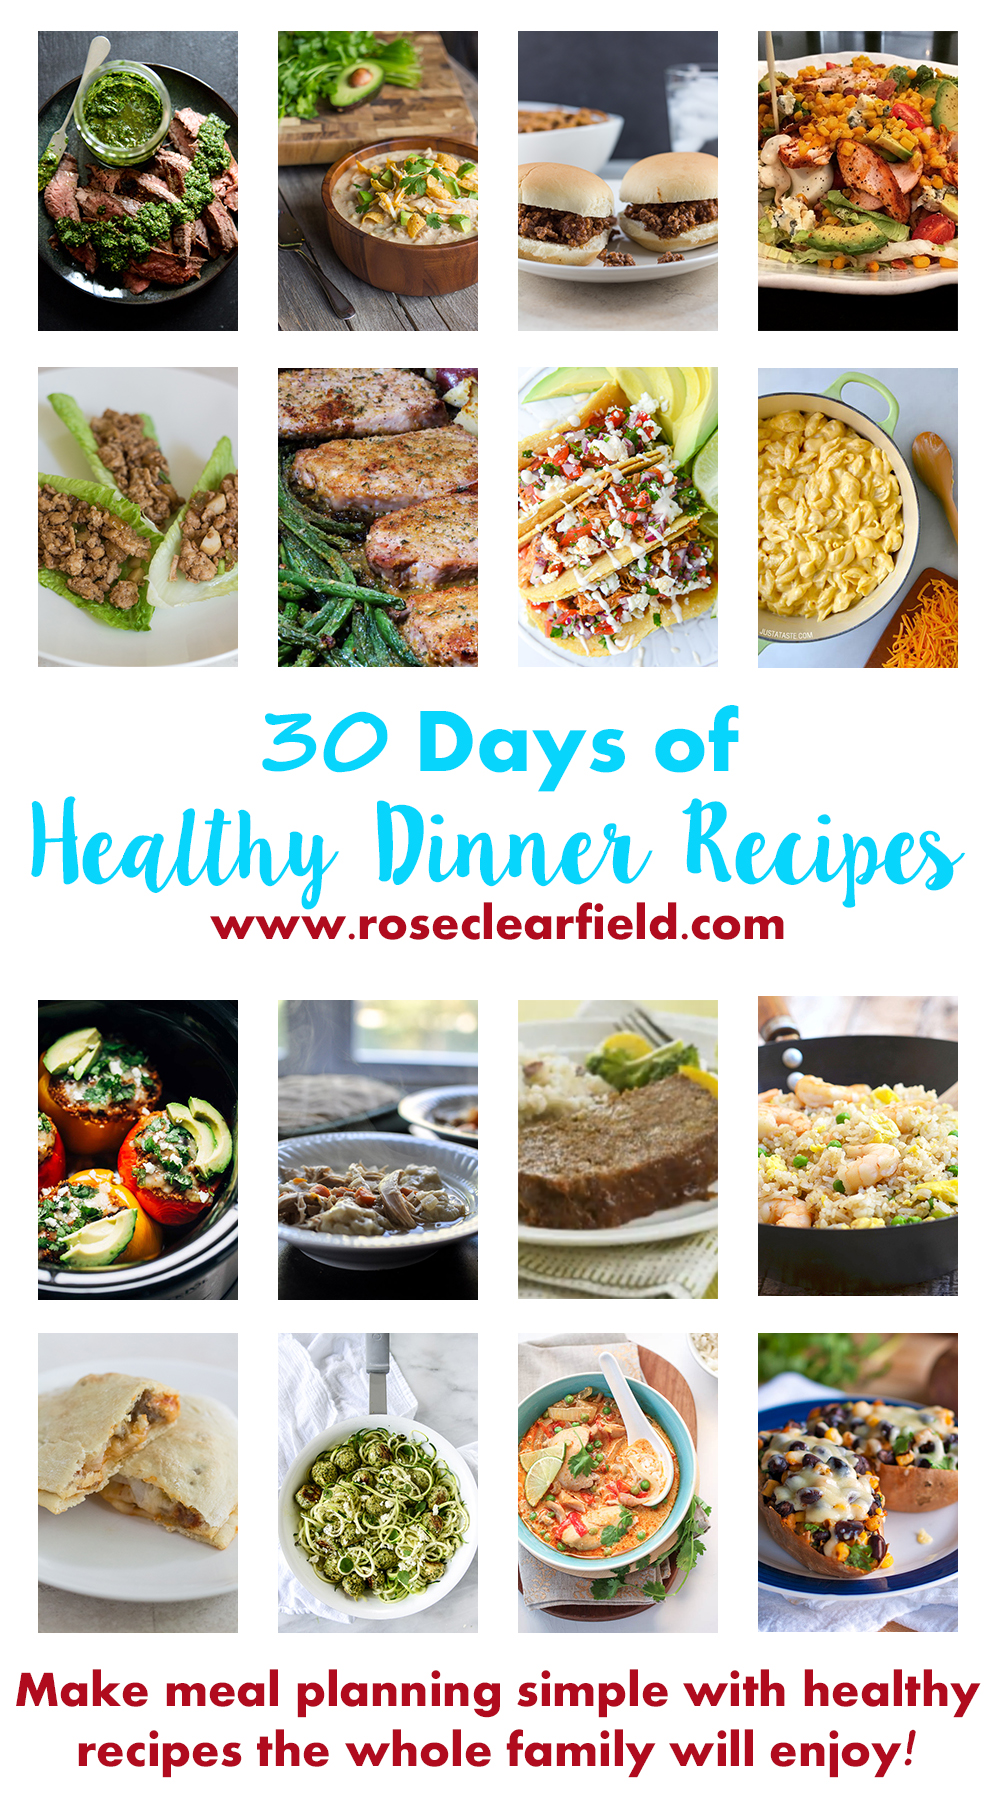 30 days of healthy dinner recipes rose clearfield 30 days of healthy dinner recipes make meal planning stress free with simple forumfinder Gallery